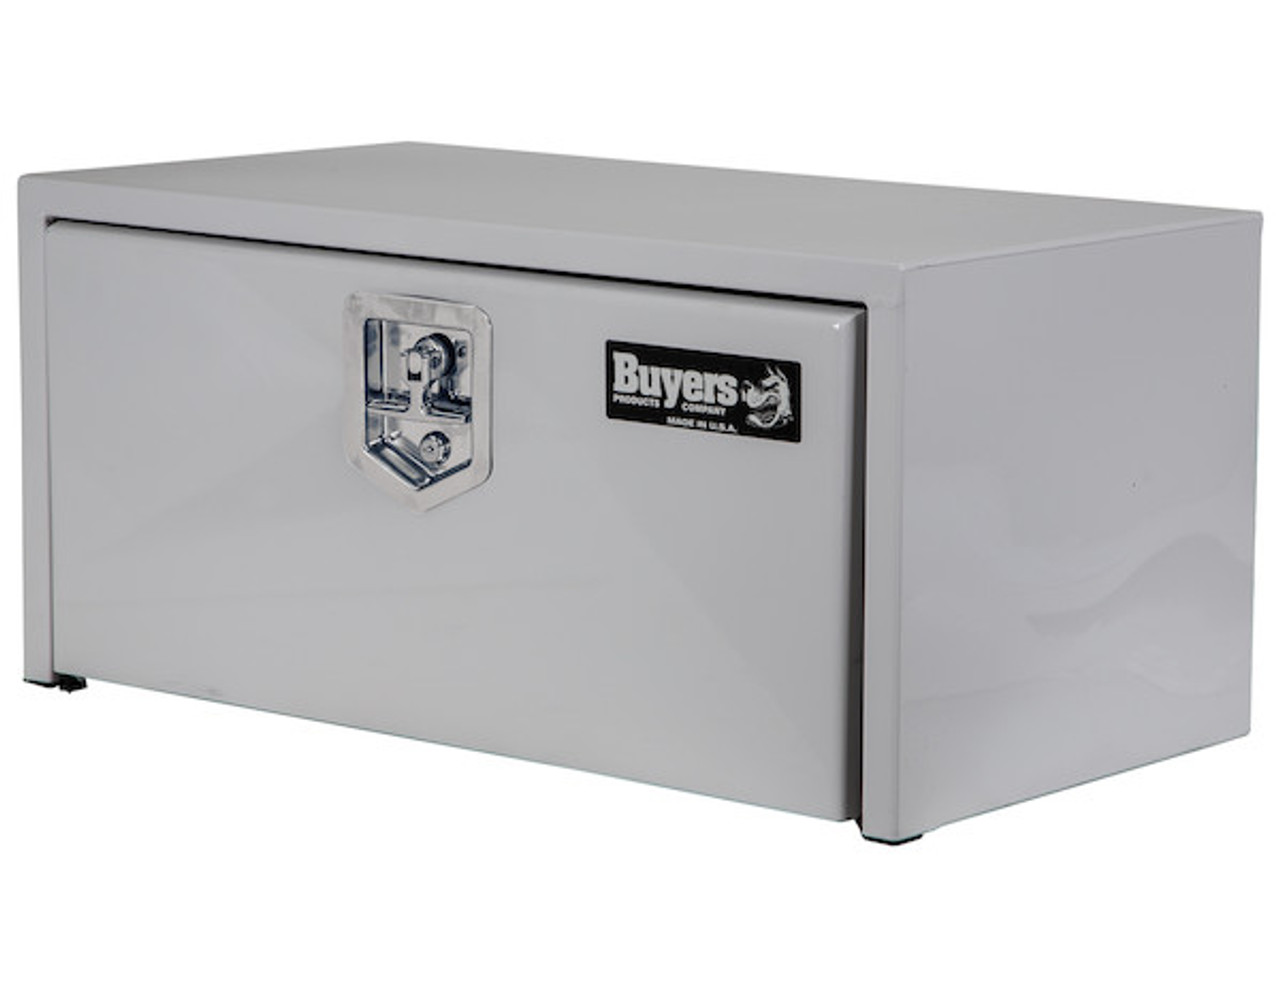 "1703404 BUYERS PRODUCTS WHITE STEEL UNDERBODY TRUCK TOOLBOX WITH BUILT-IN SHELF 14""HX16""DX30""W Picture # 3"